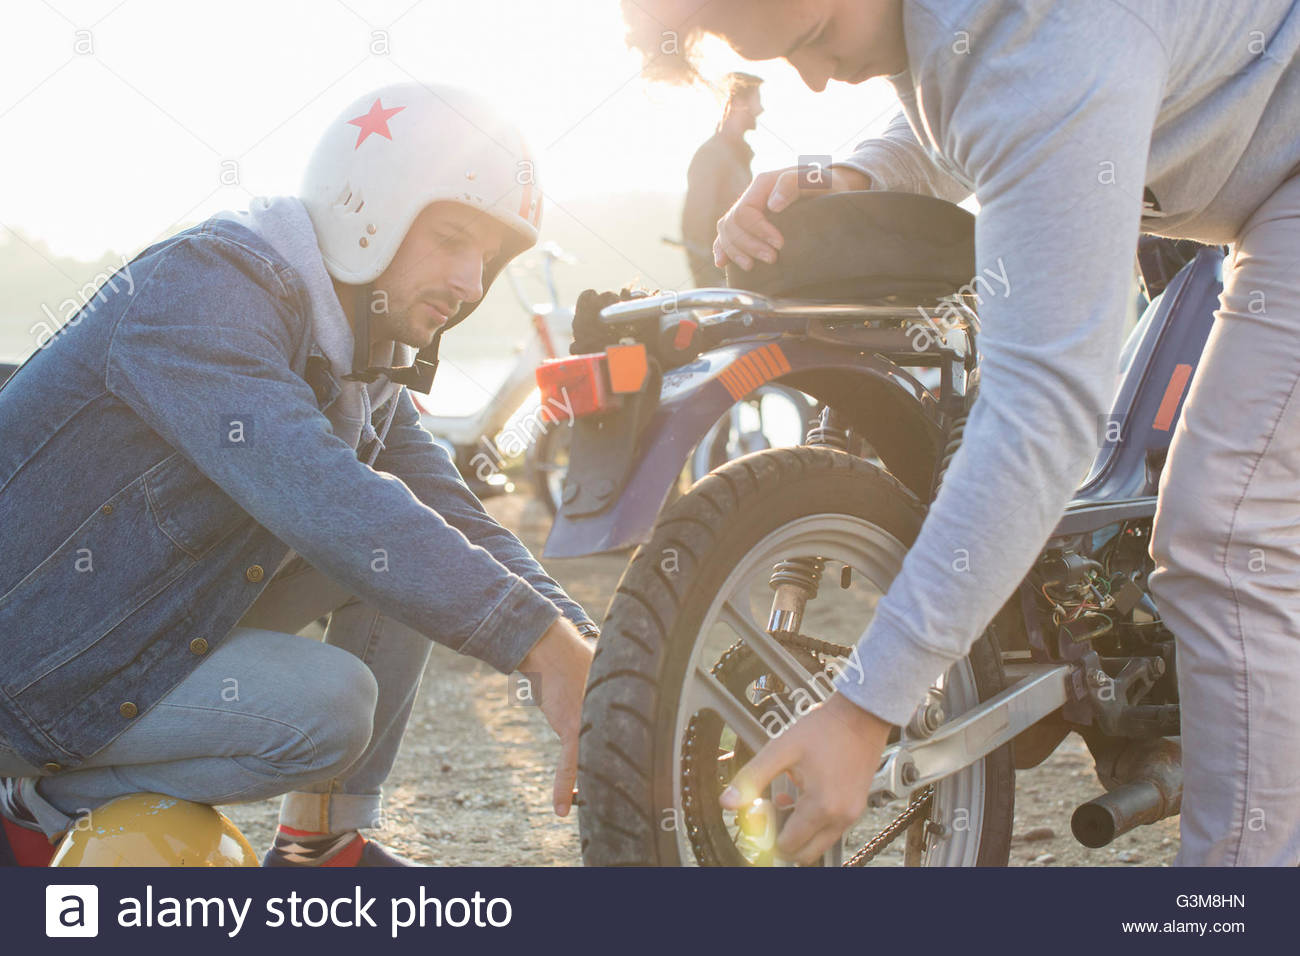 Two men fixing wheel on moped, outdoors - Stock Image